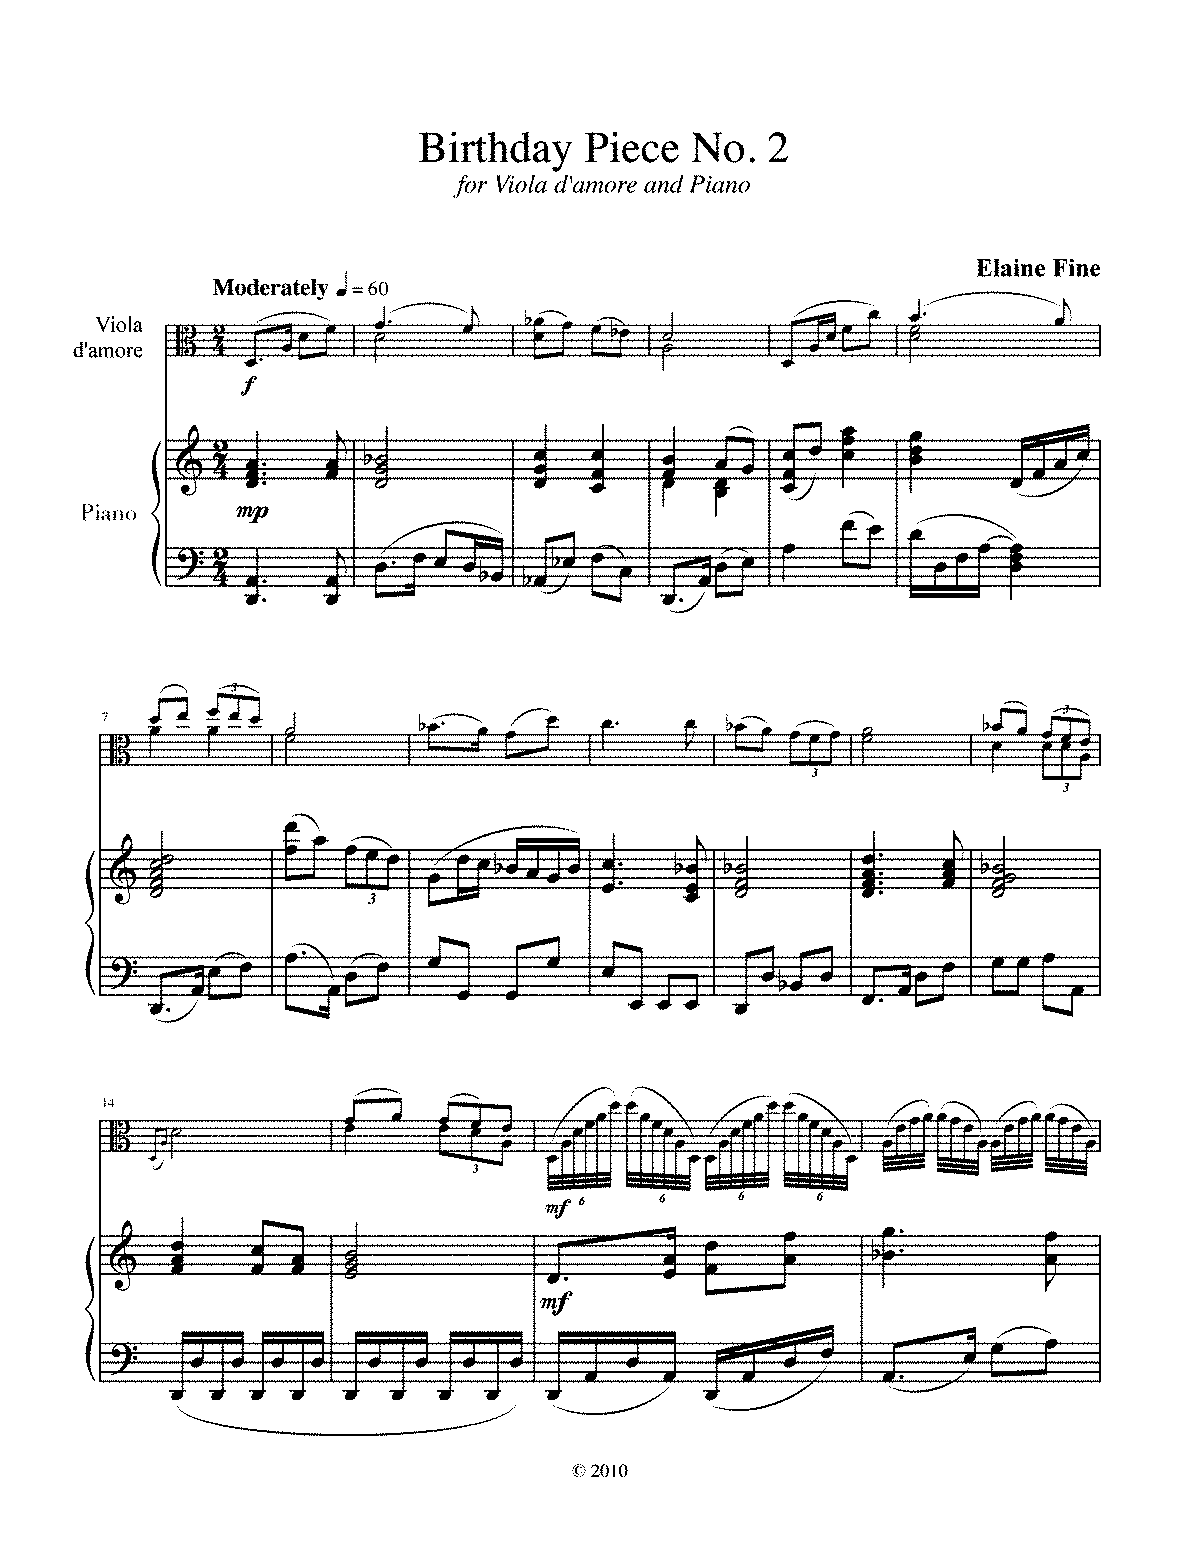 WIMA.1fce-Fine Birthday Piece No. 2 for viola d amore and piano.pdf